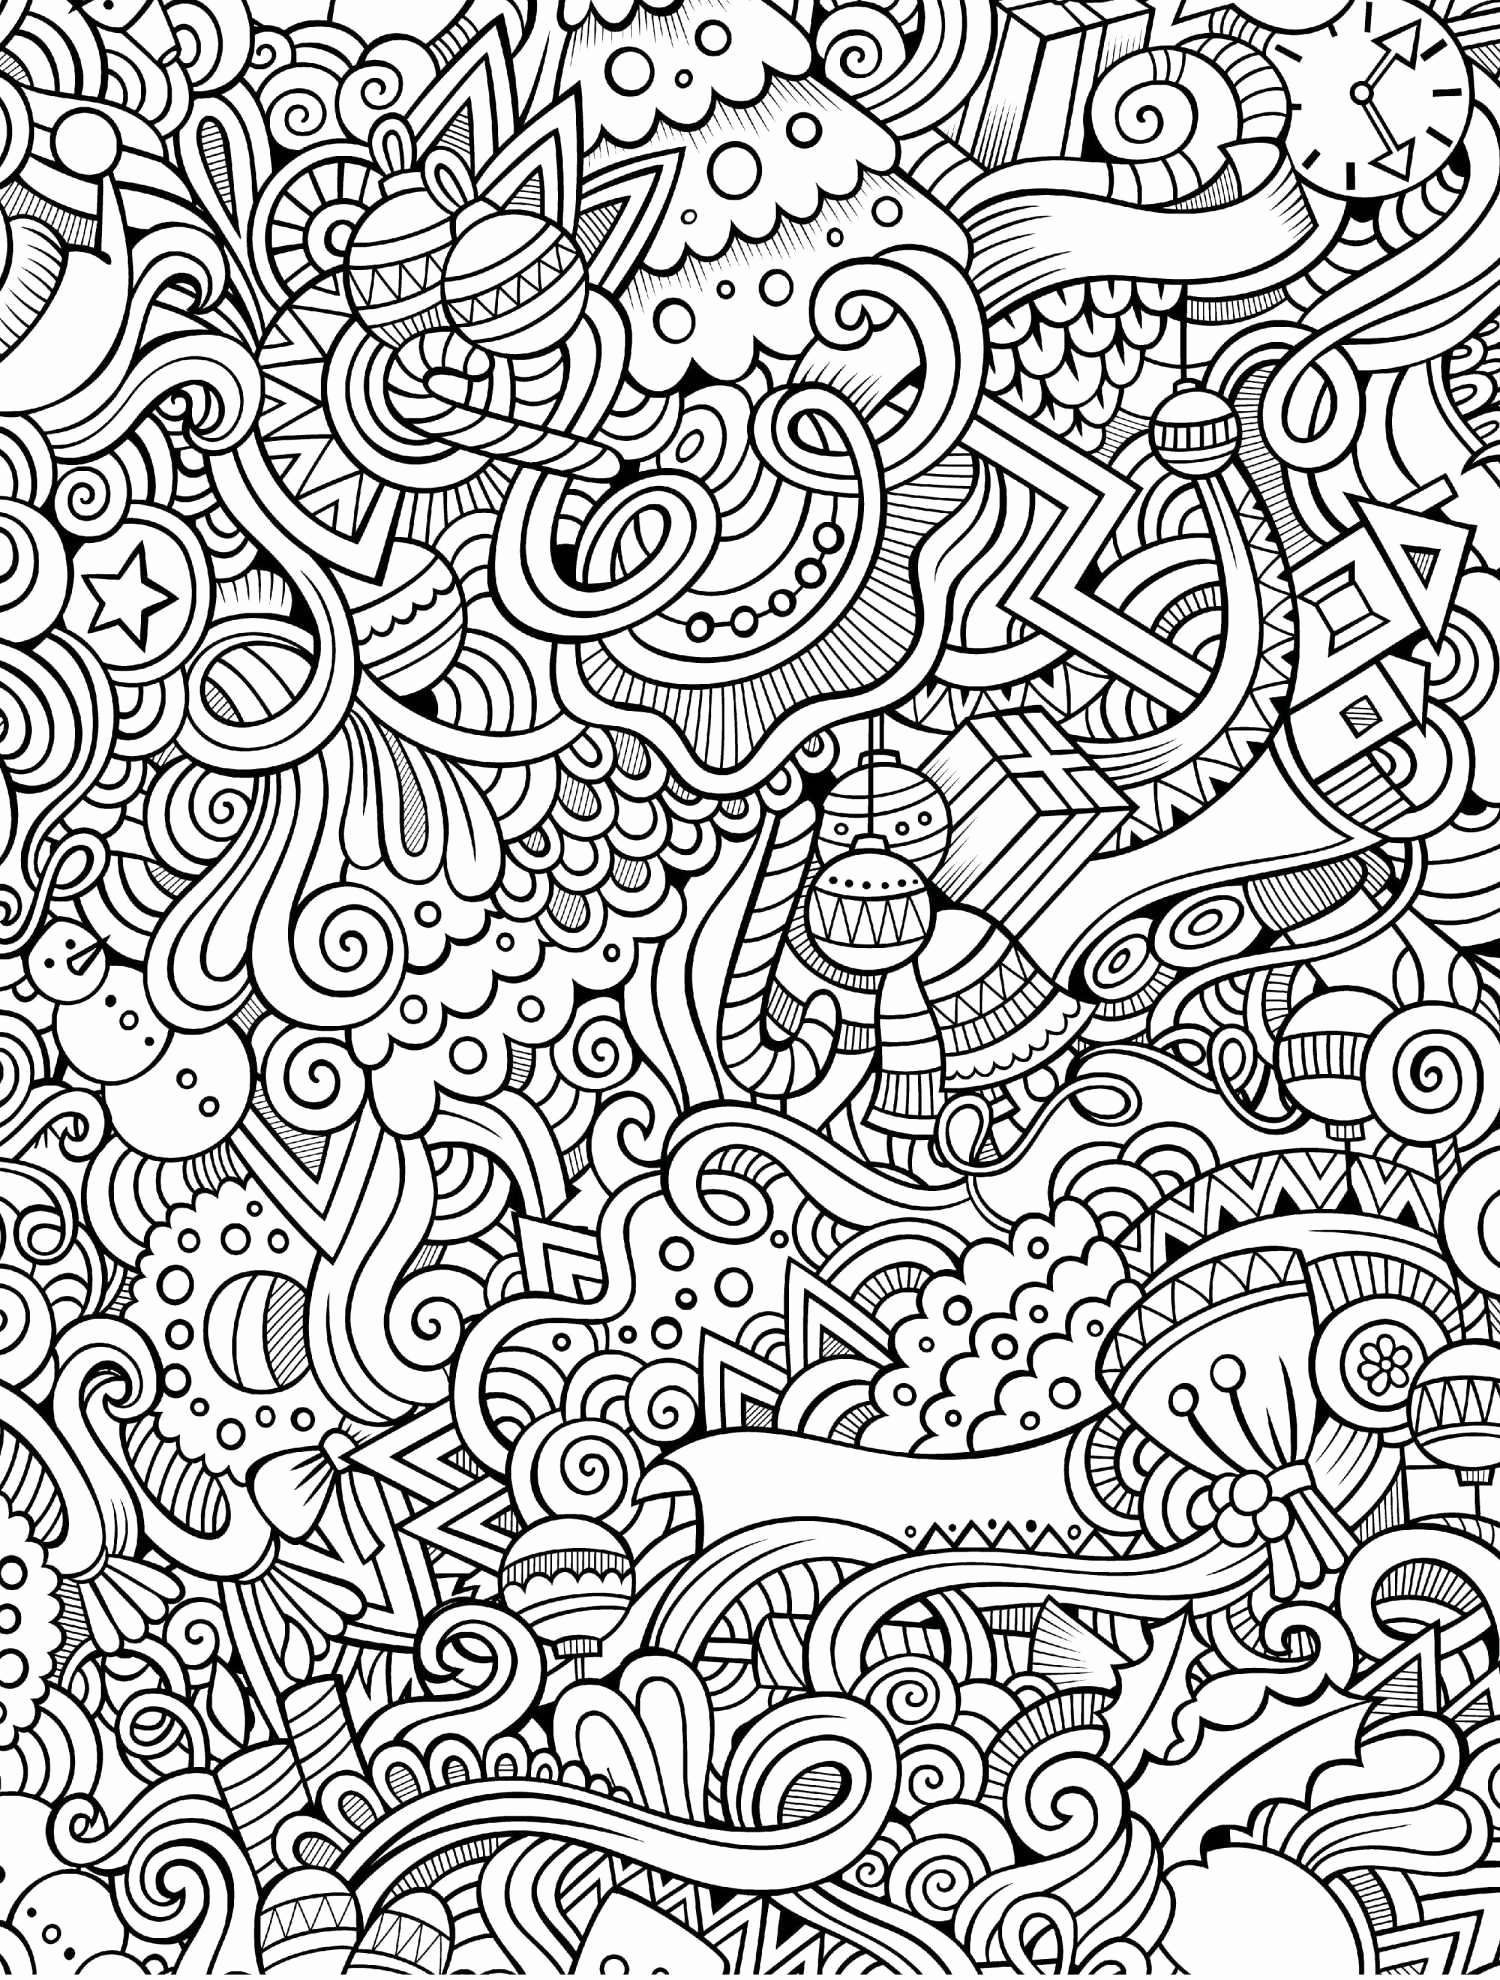 Christmas Coloring Pages On Pinterest With For Adults Online Printable